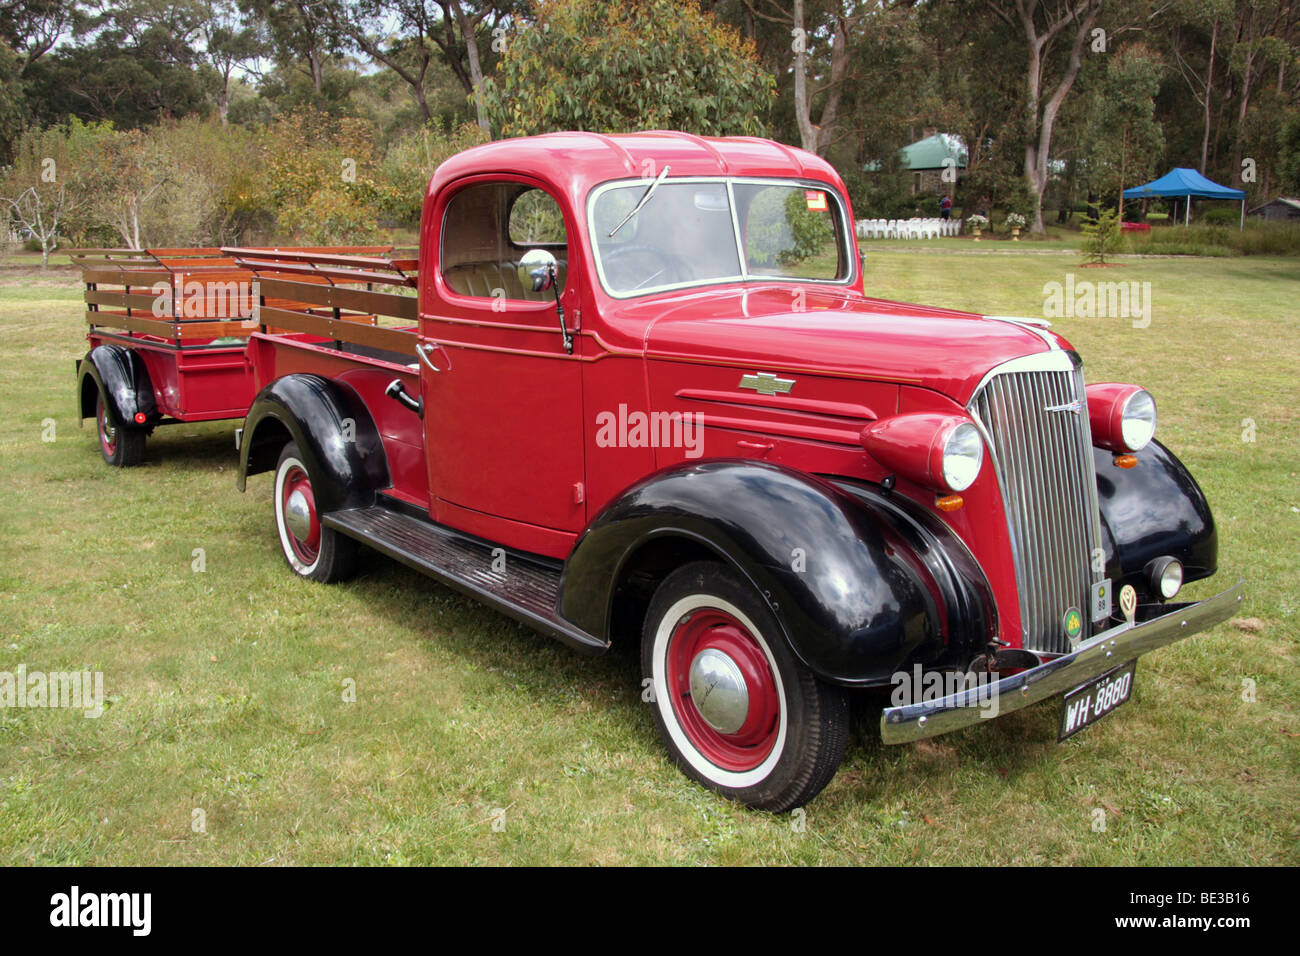 Old Chevy Truck Stock Photos & Old Chevy Truck Stock Images - Alamy